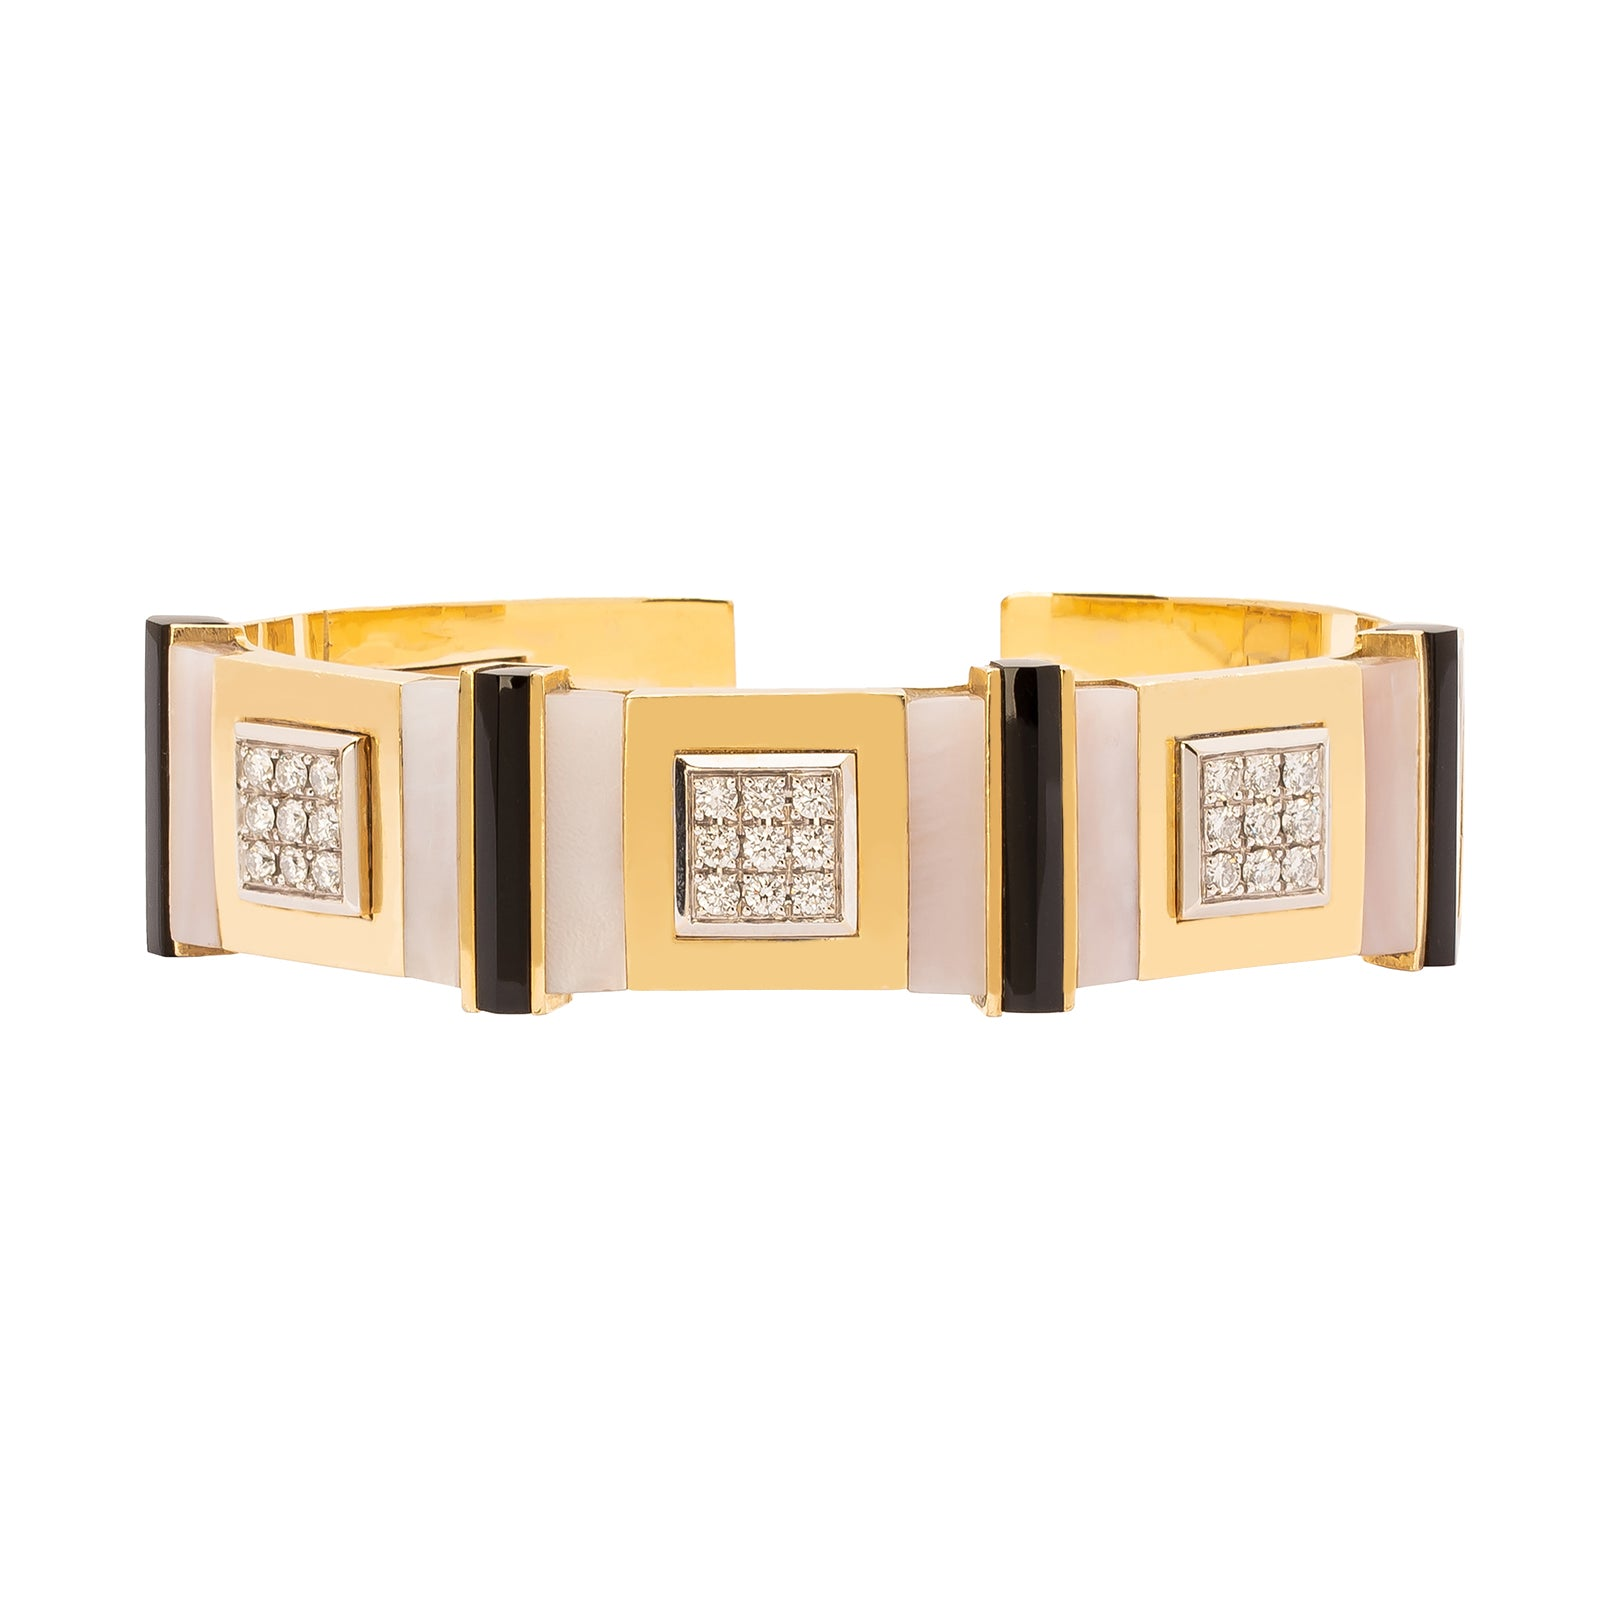 Jenna Blake Deco Cuff - Bracelets - Broken English Jewelry